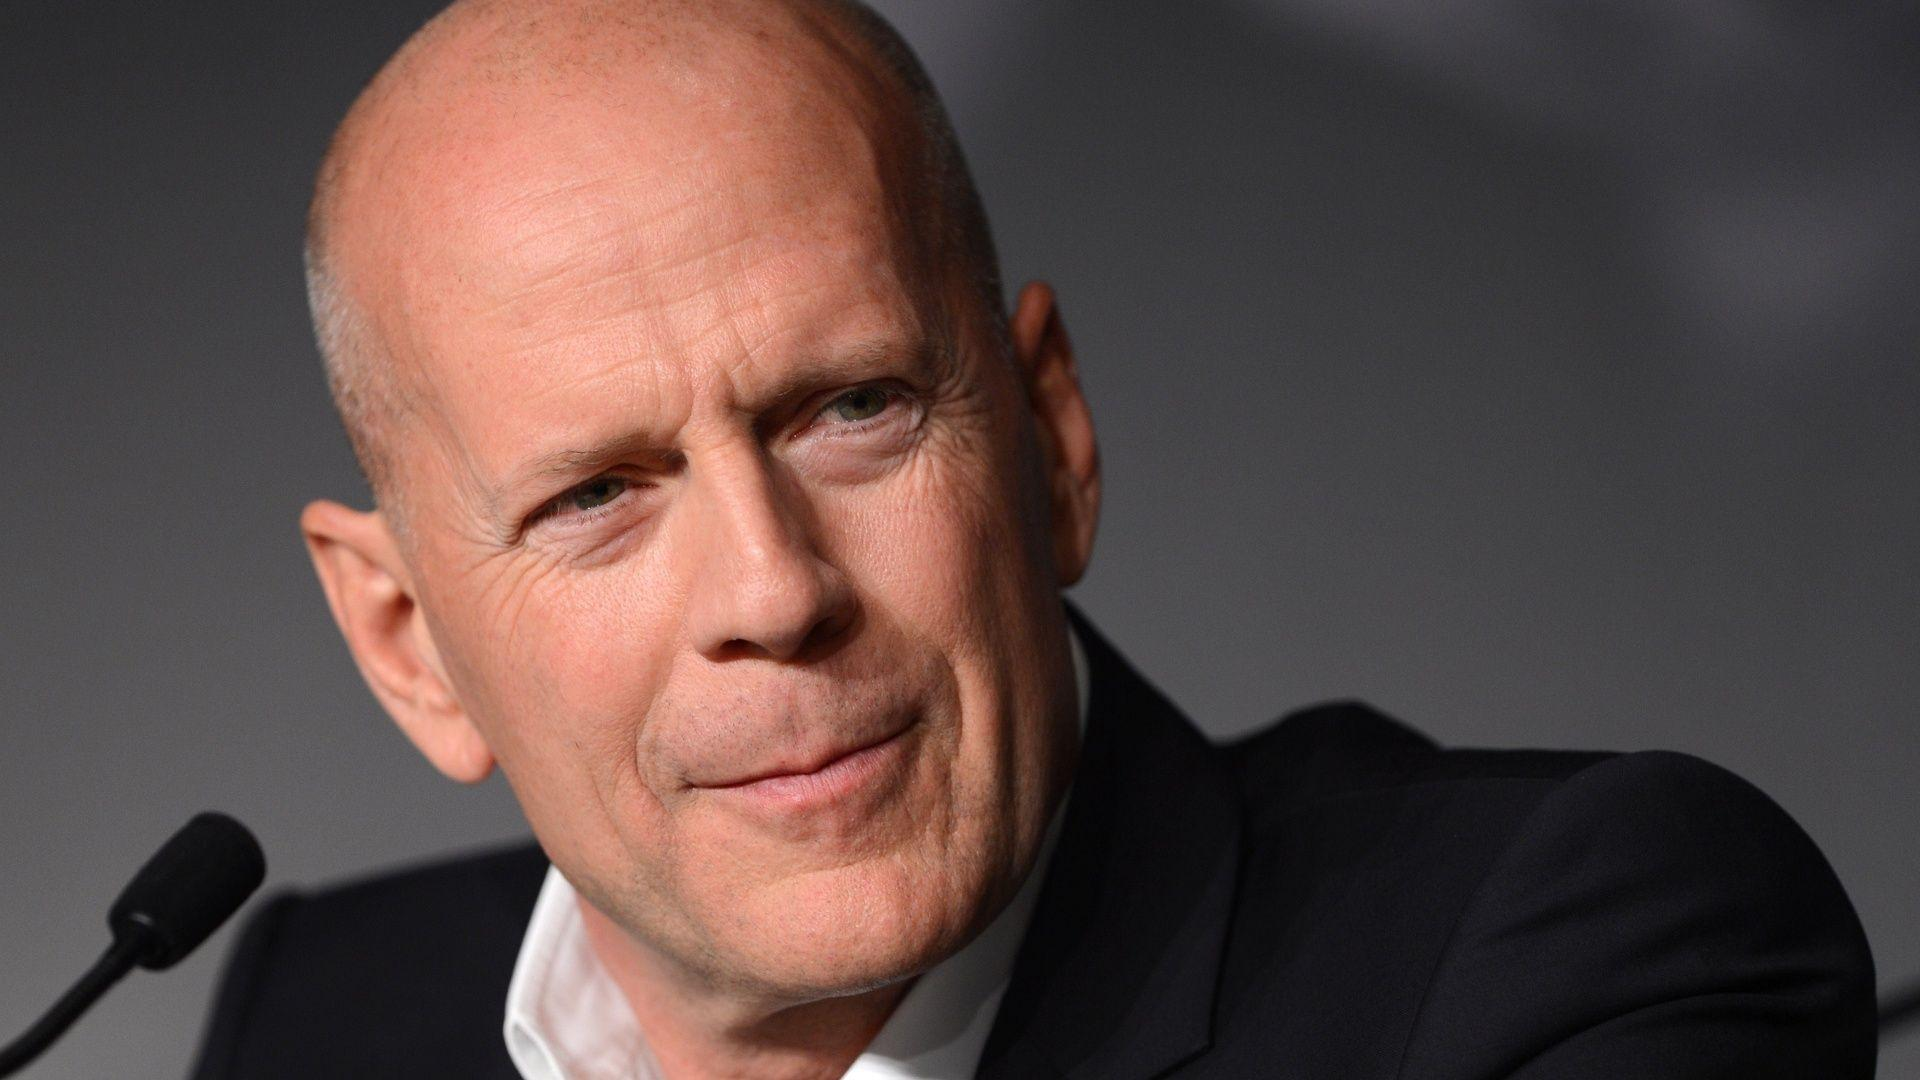 Bruce Willis wallpaper | 1920x1080 | #61846